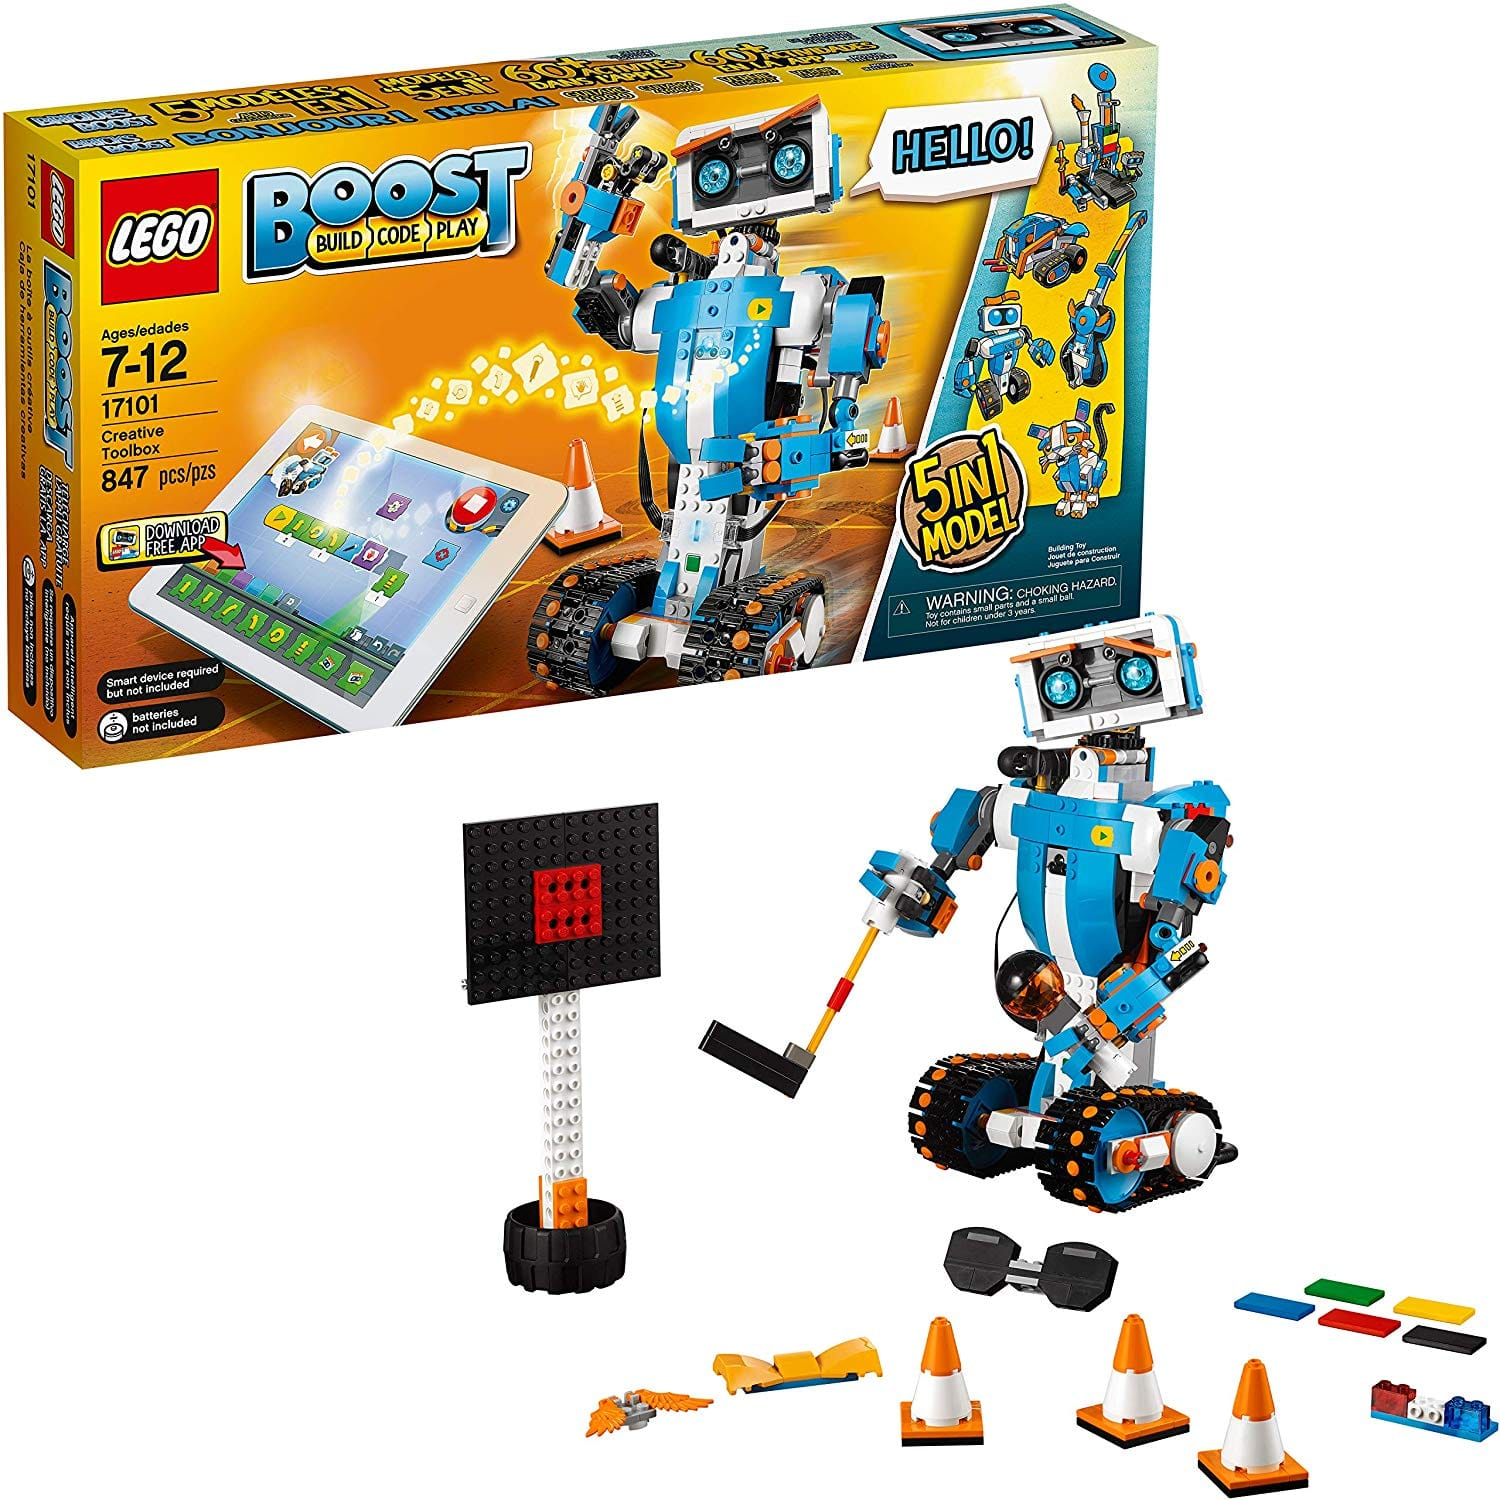 LEGO Boost Creative Toolbox 17101 Fun Robot Building Set and Educational Coding Kit for Kids, Award-Winning STEM Learning Toy (847 Pieces) $111.99